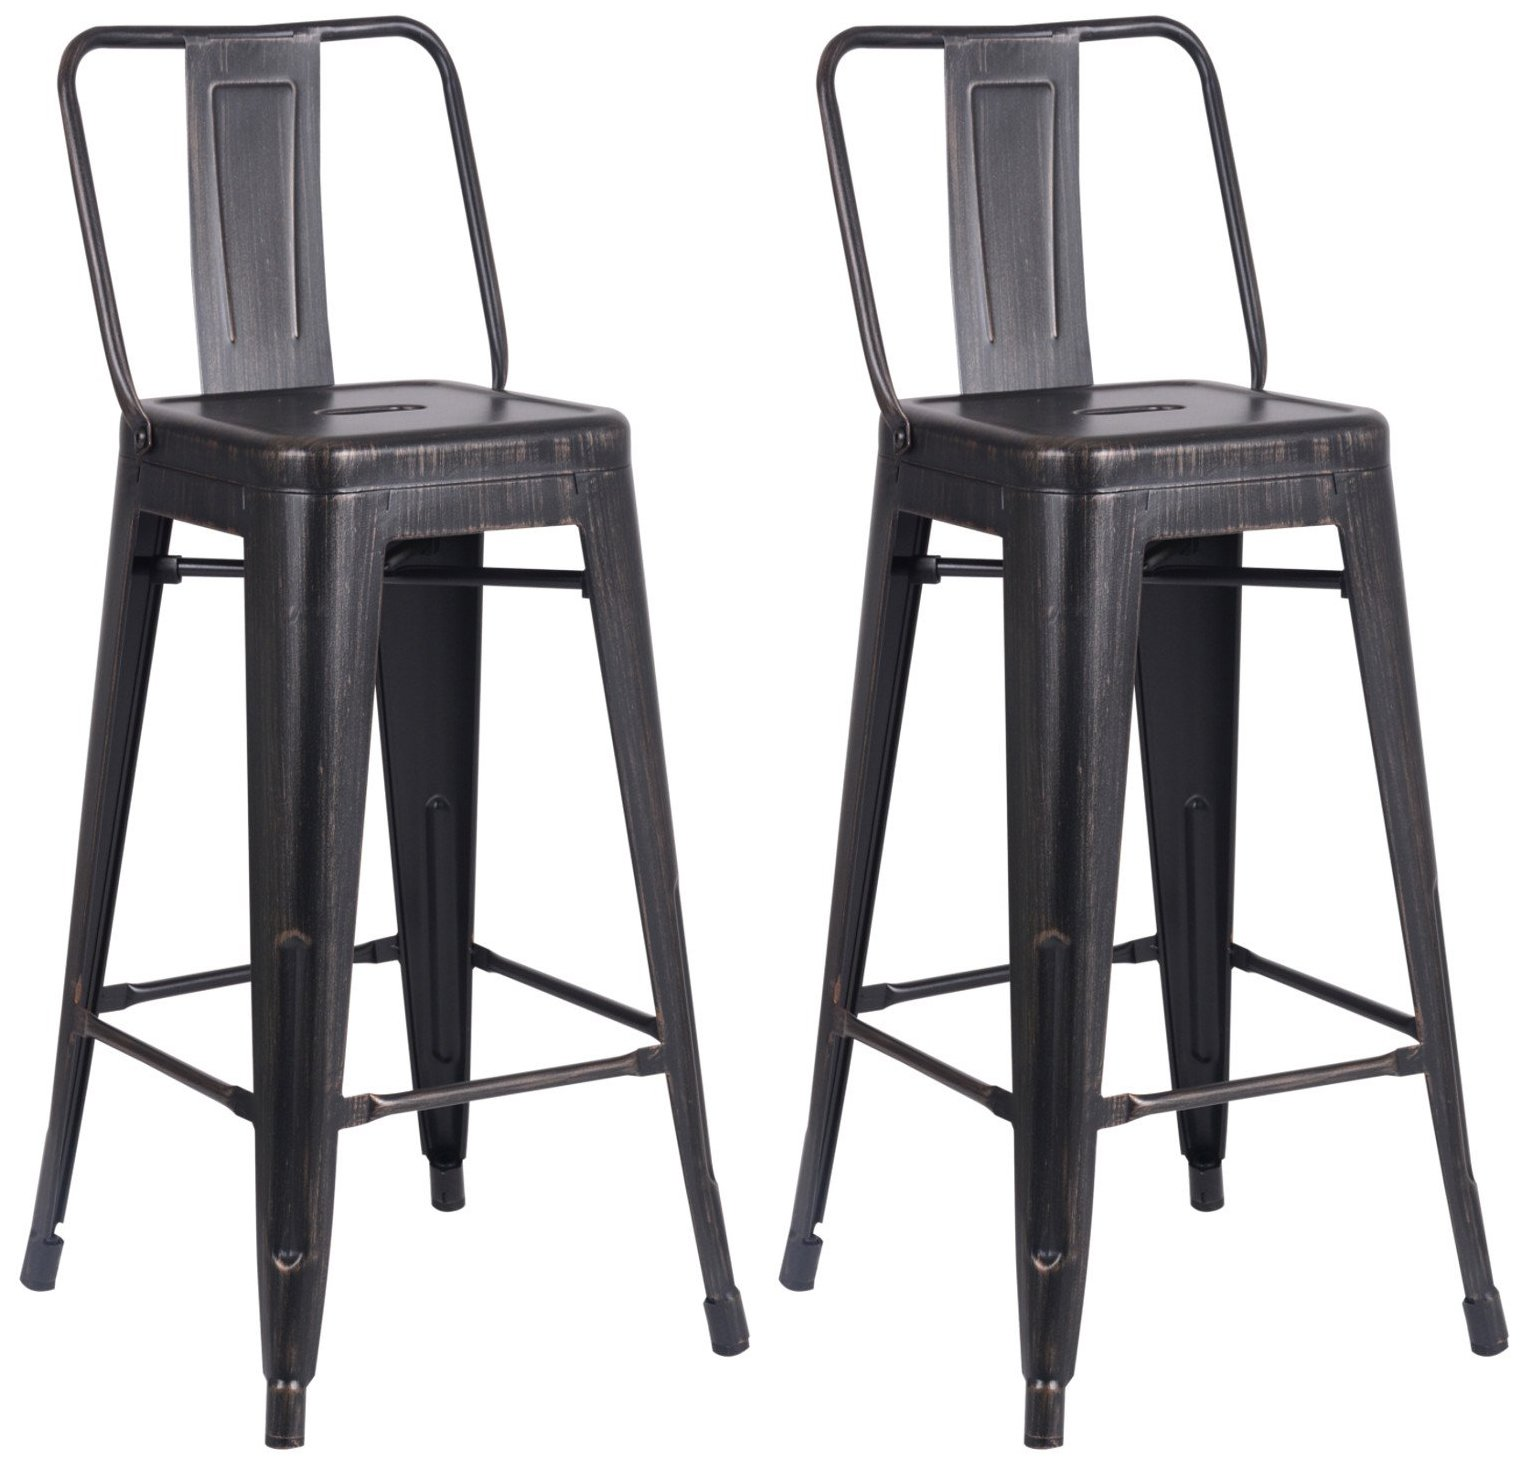 AC Pacific Modern Light Weight Industrial Metal Bucket Back Barstool, 30'' Seat Height Counter Stool (Set of 2), Distressed Black Finish by AC Pacific